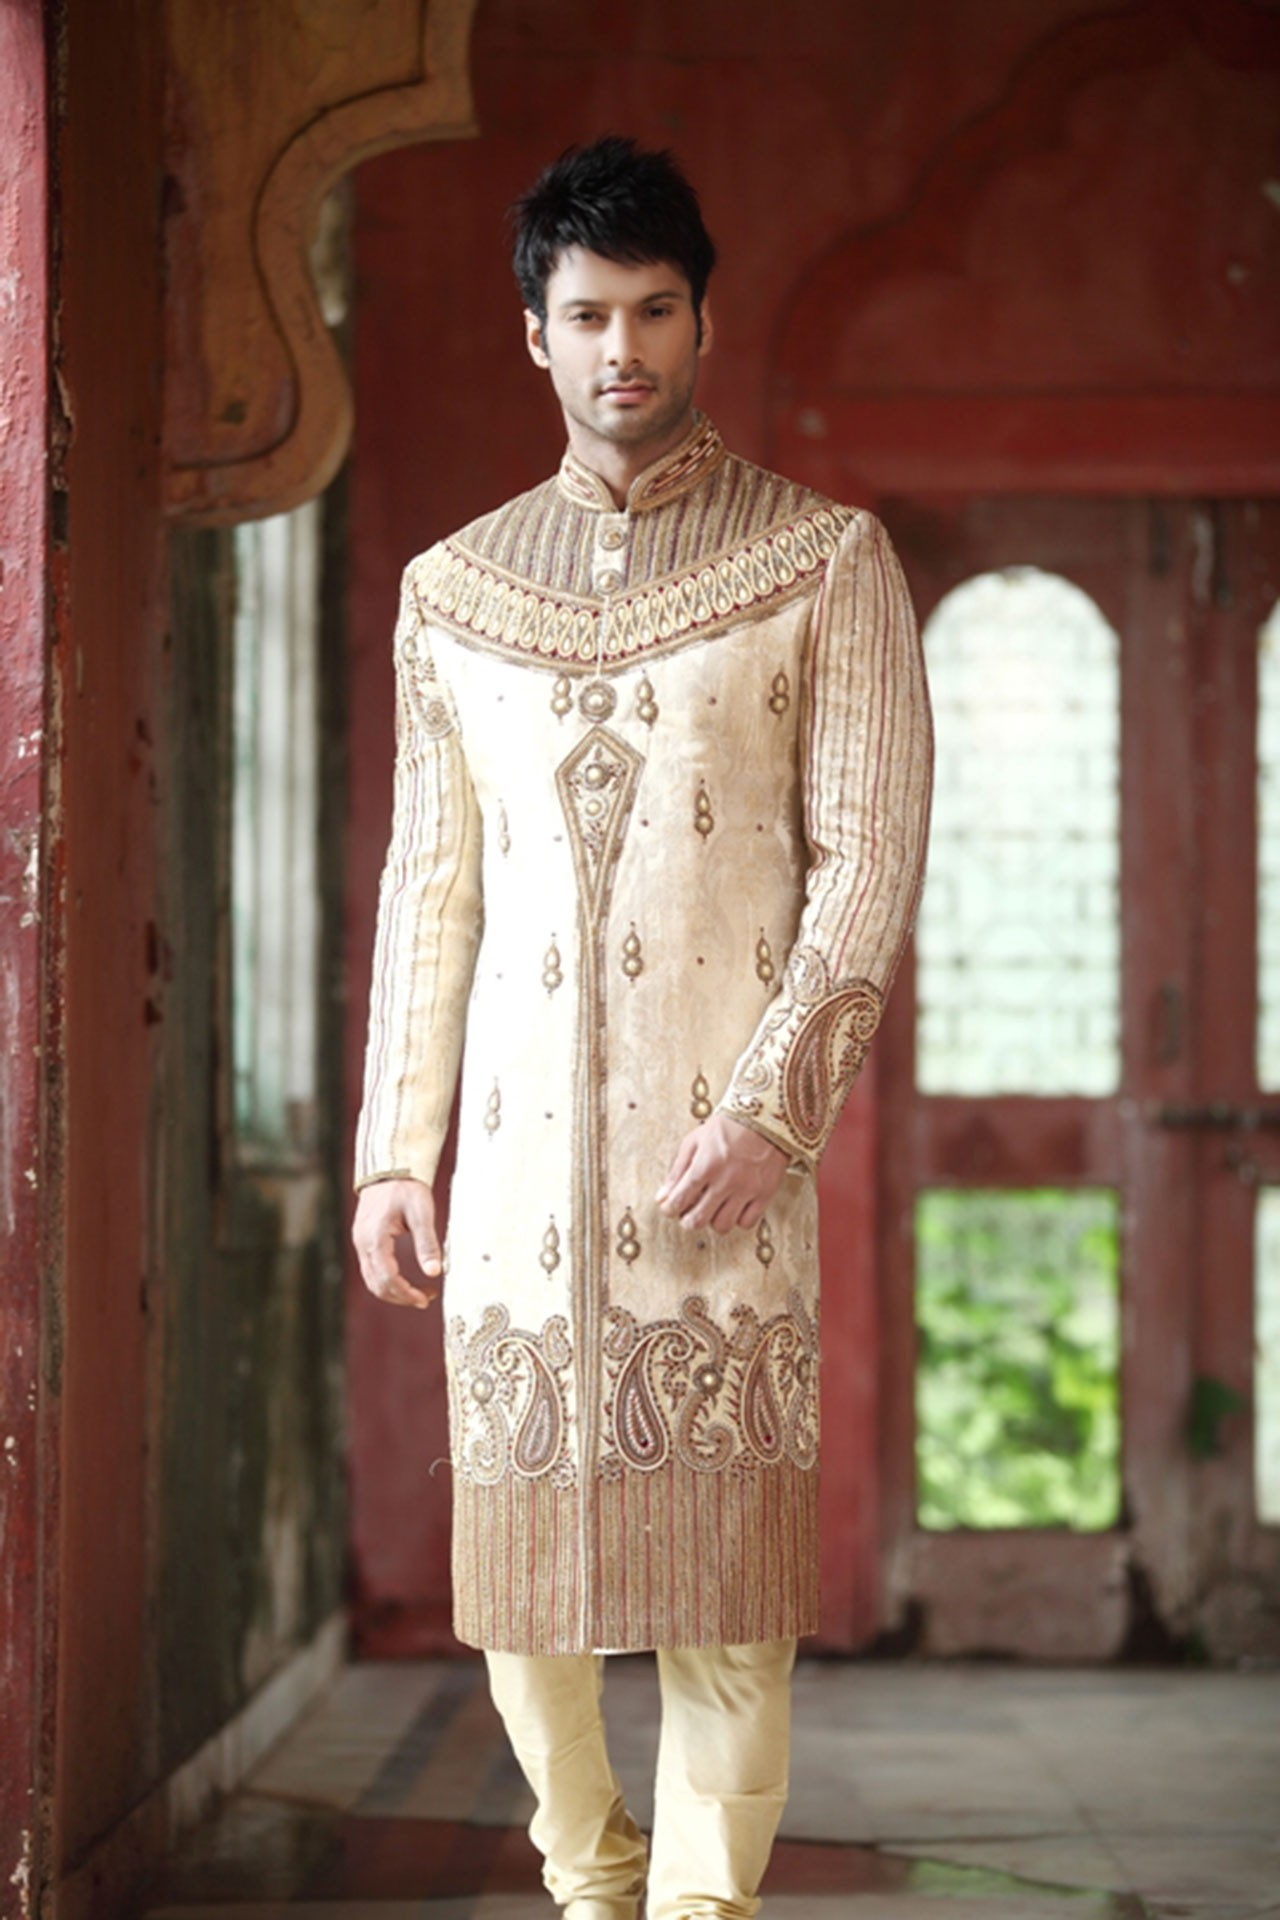 ARTISTIC WEDDING SHERWANI